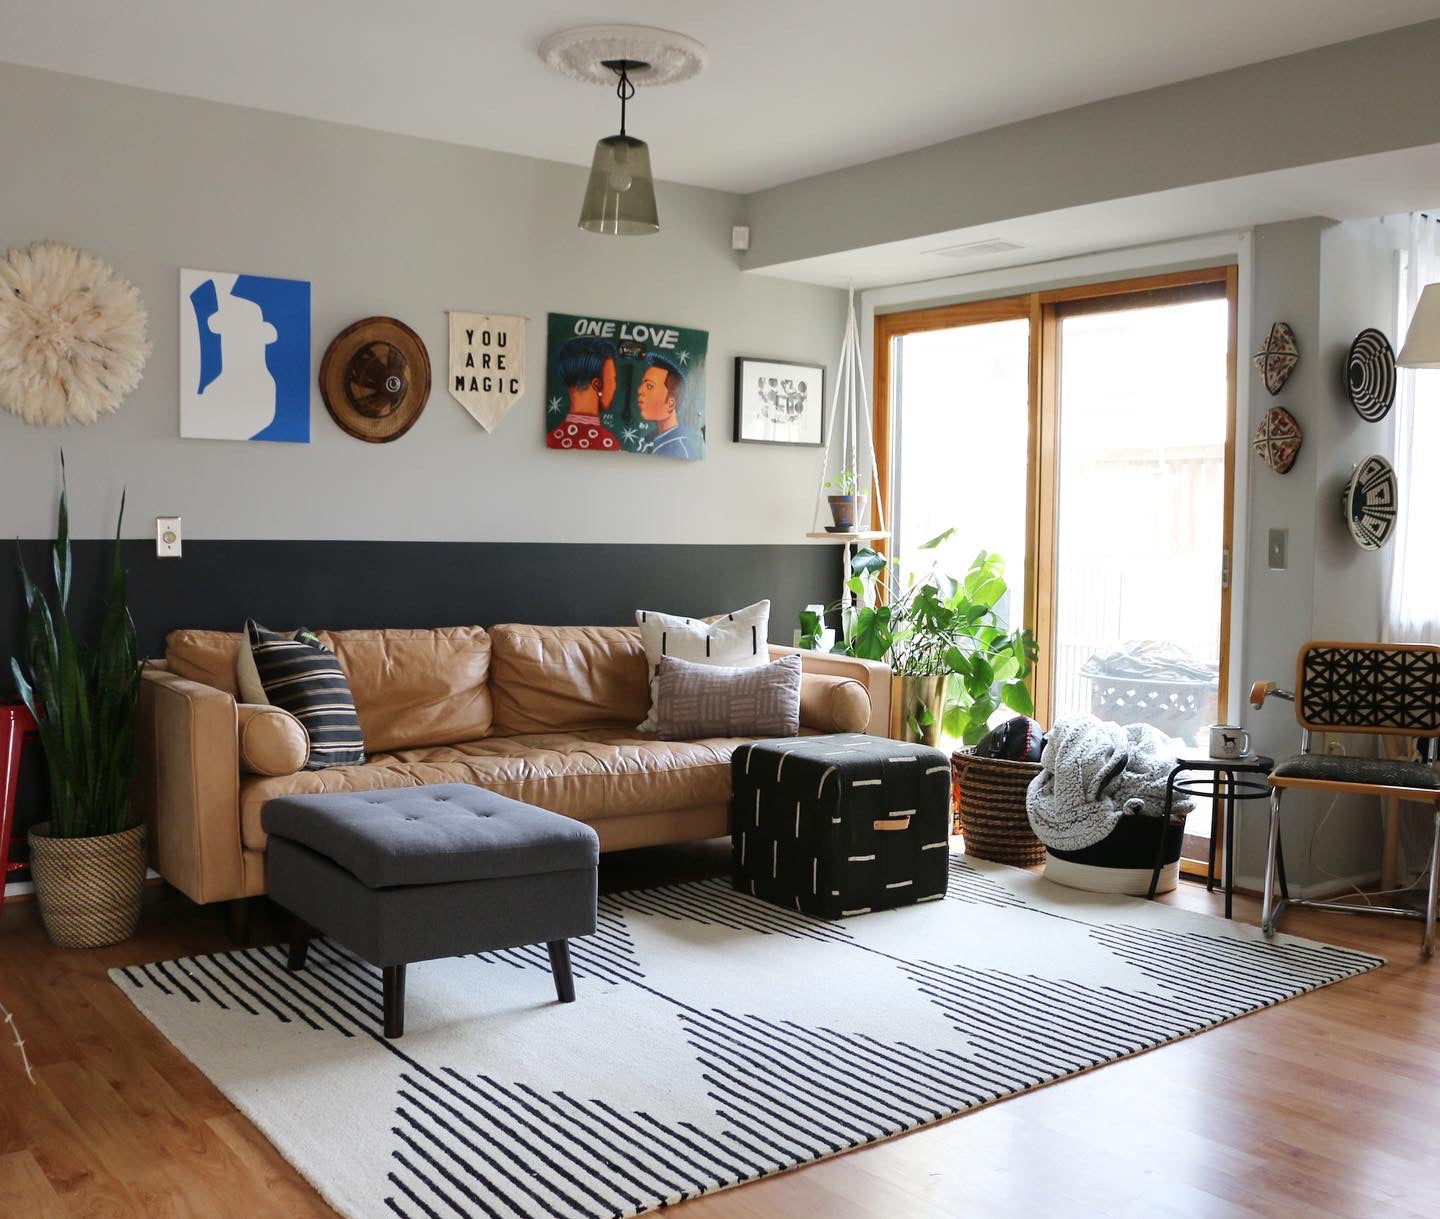 Modern African home decor with mudcloth and textiles